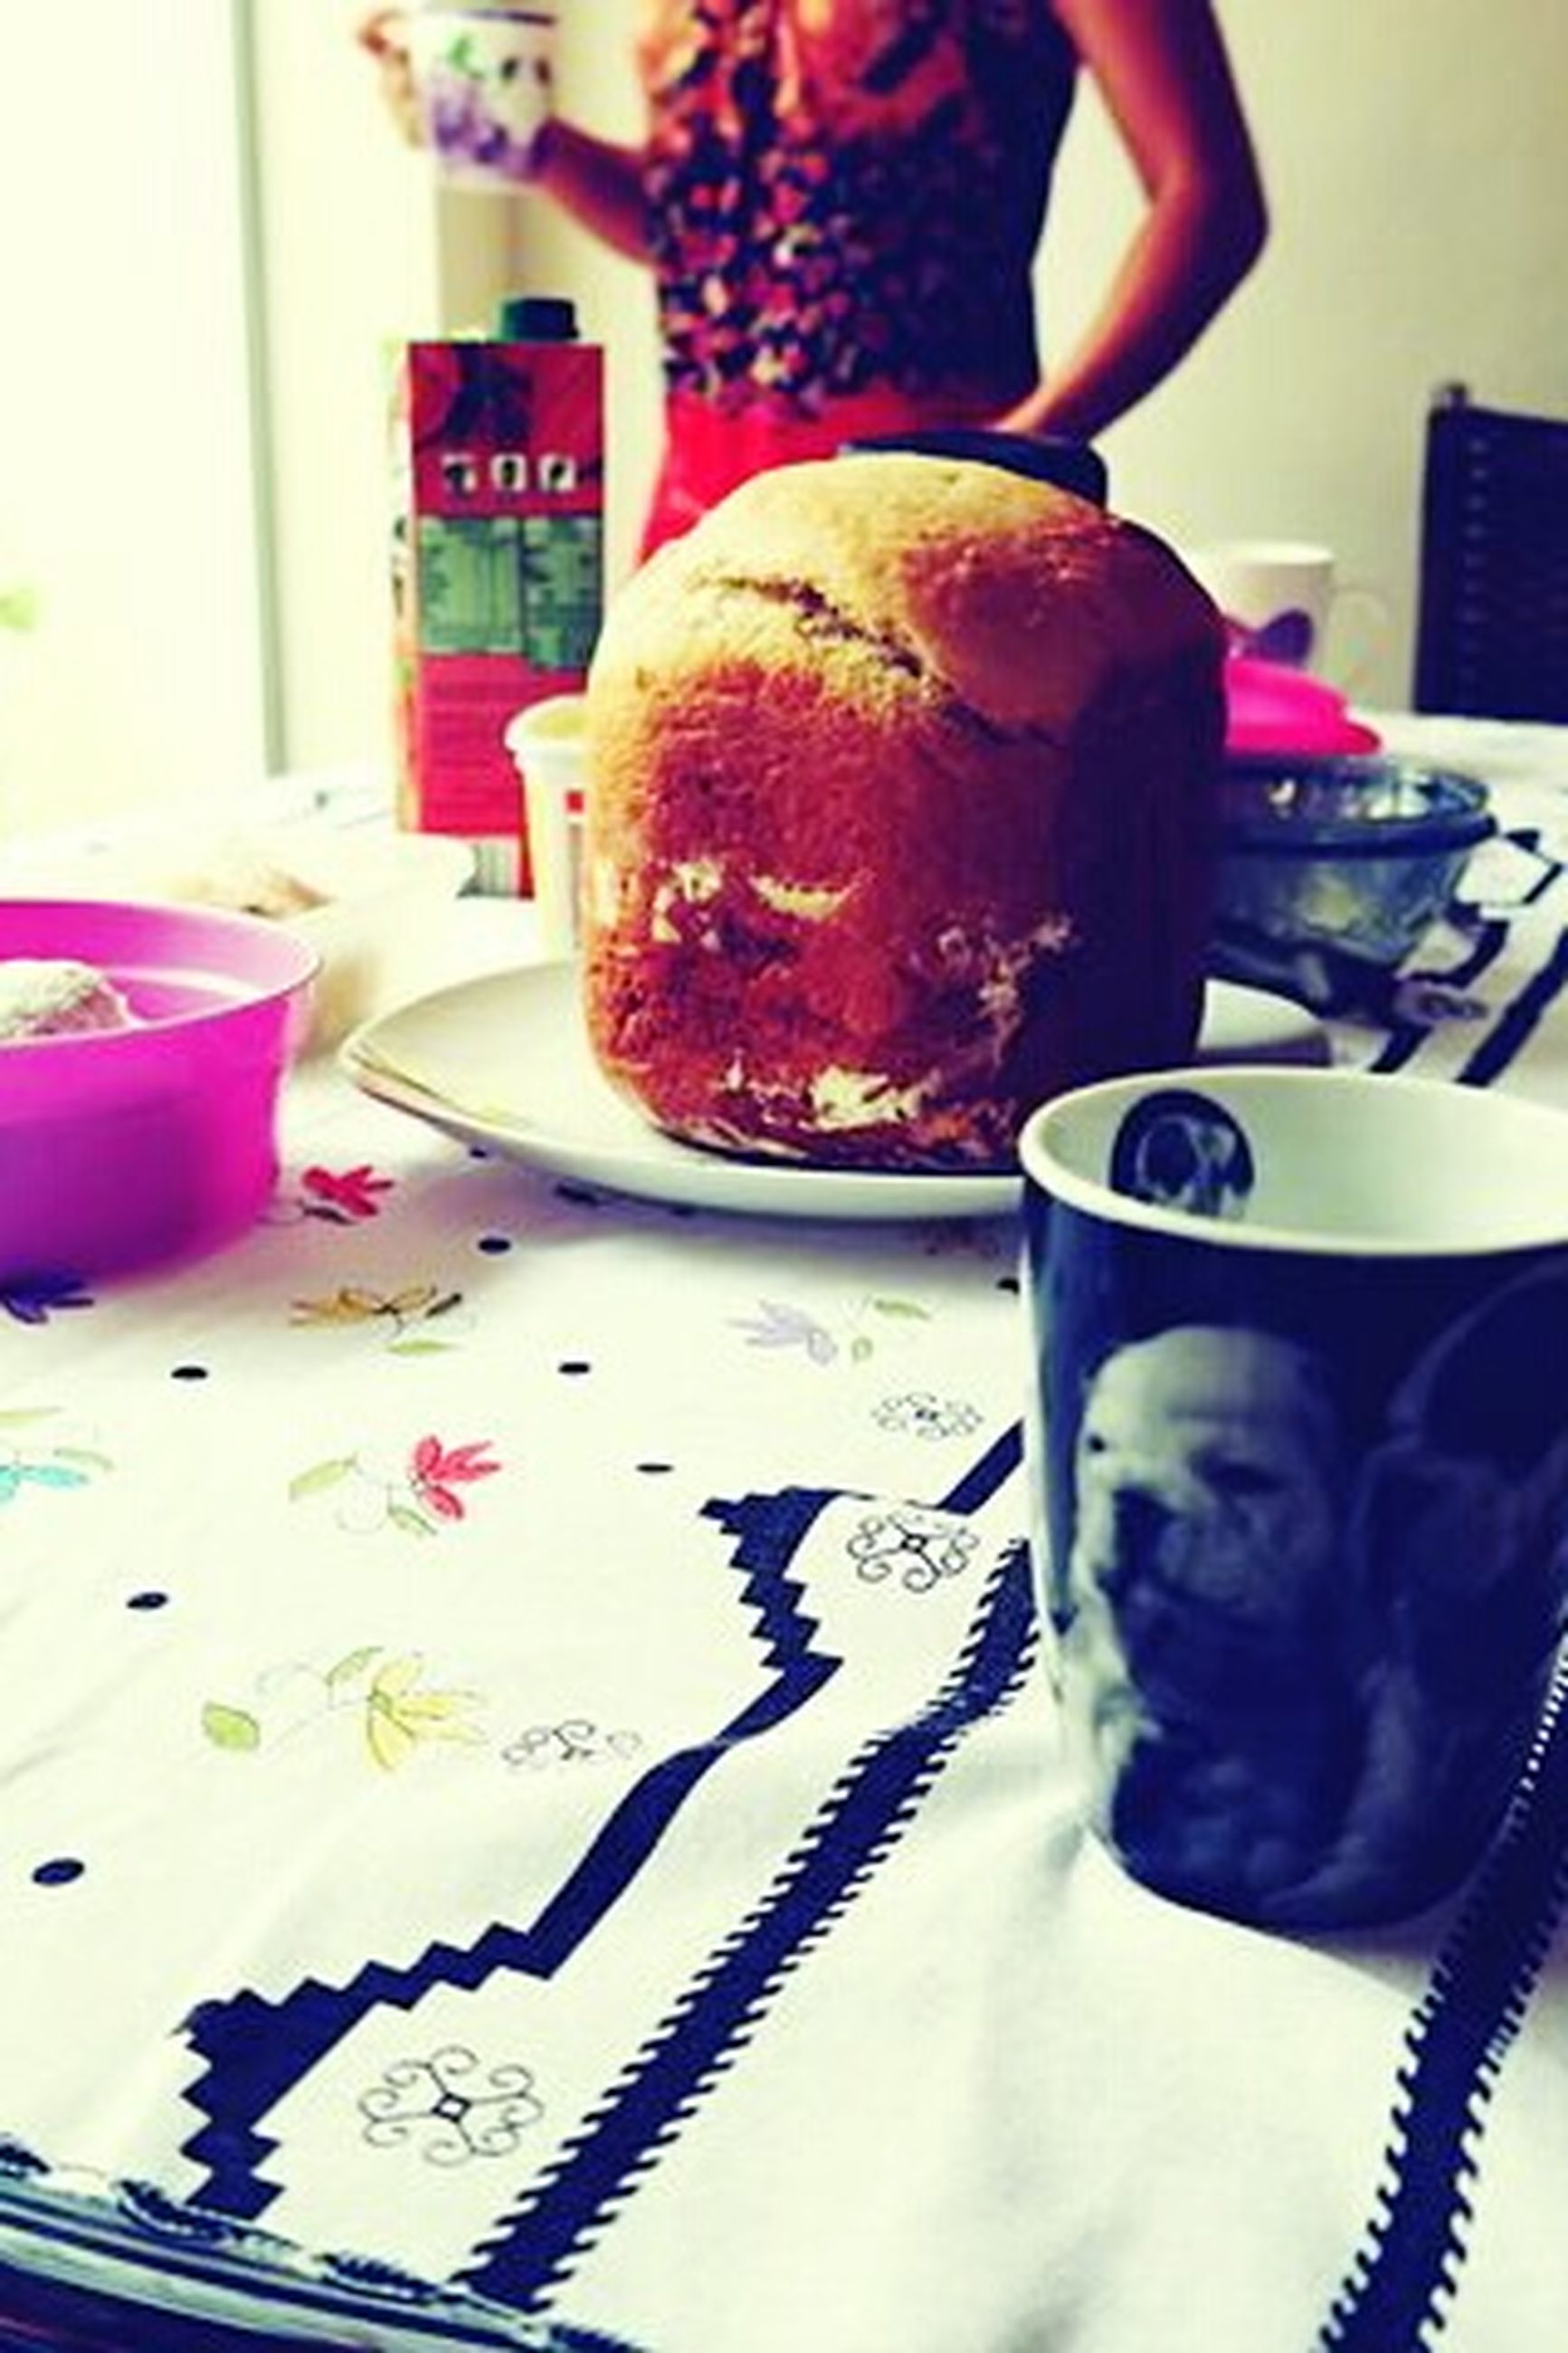 indoors, table, food and drink, home interior, coffee cup, drink, still life, refreshment, book, close-up, food, cup, freshness, coffee - drink, bed, sitting, chair, communication